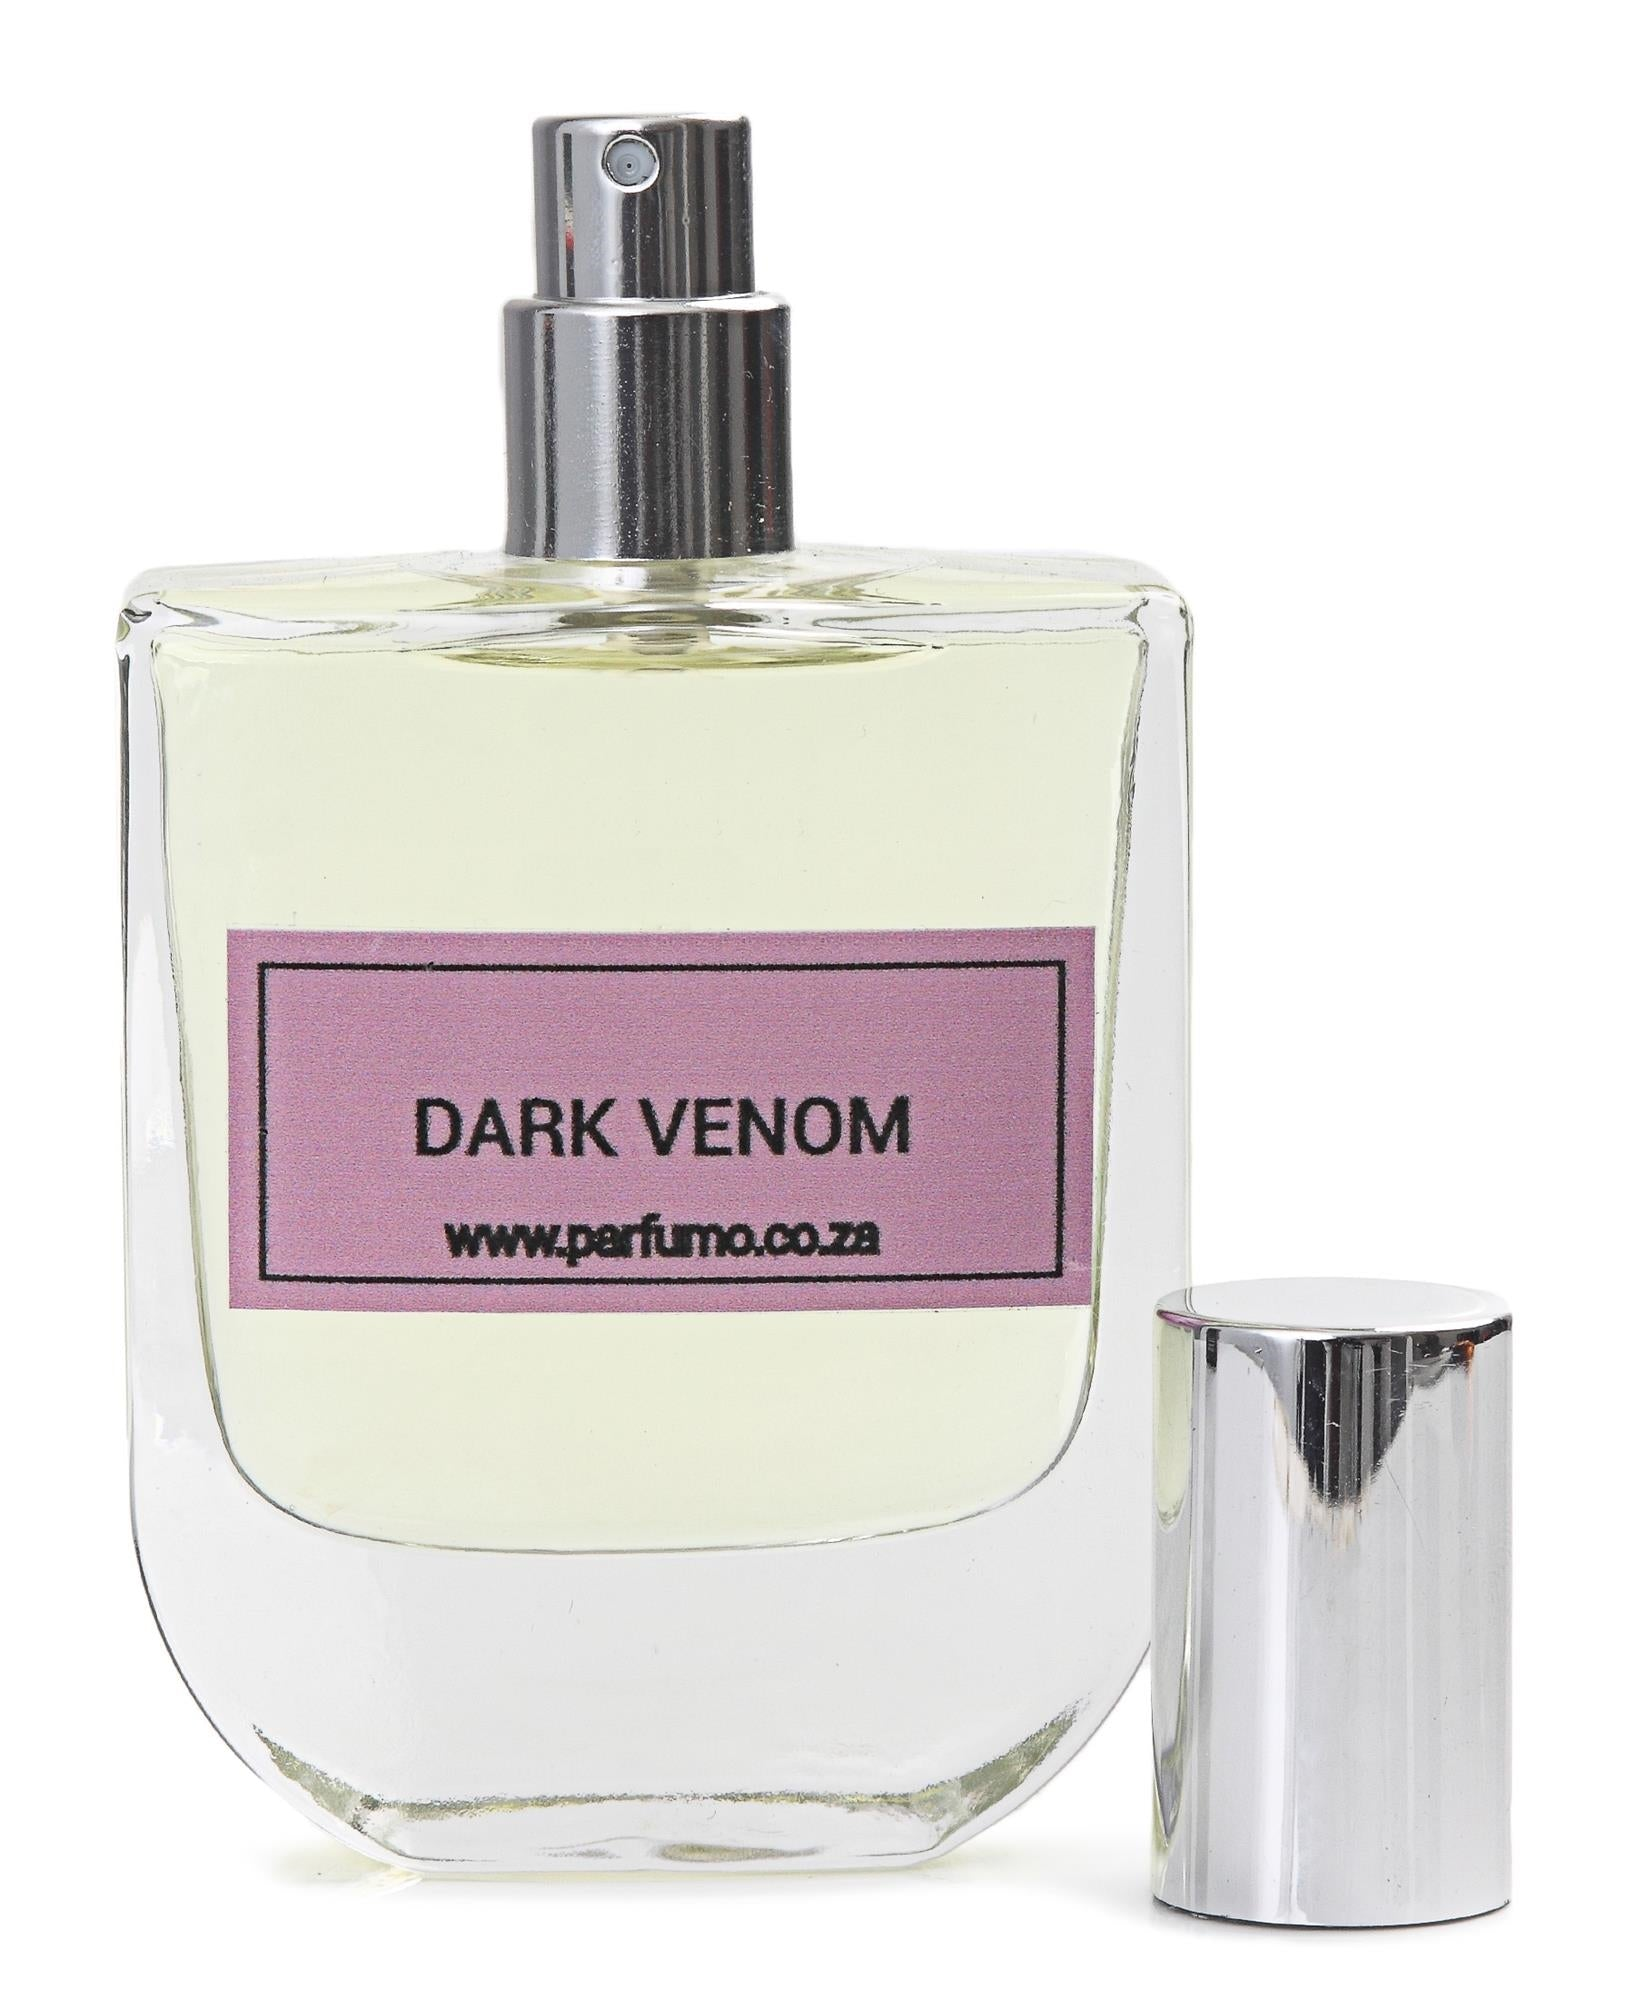 Dark Venom Inspired By Black Opium YSL - Dark Venom